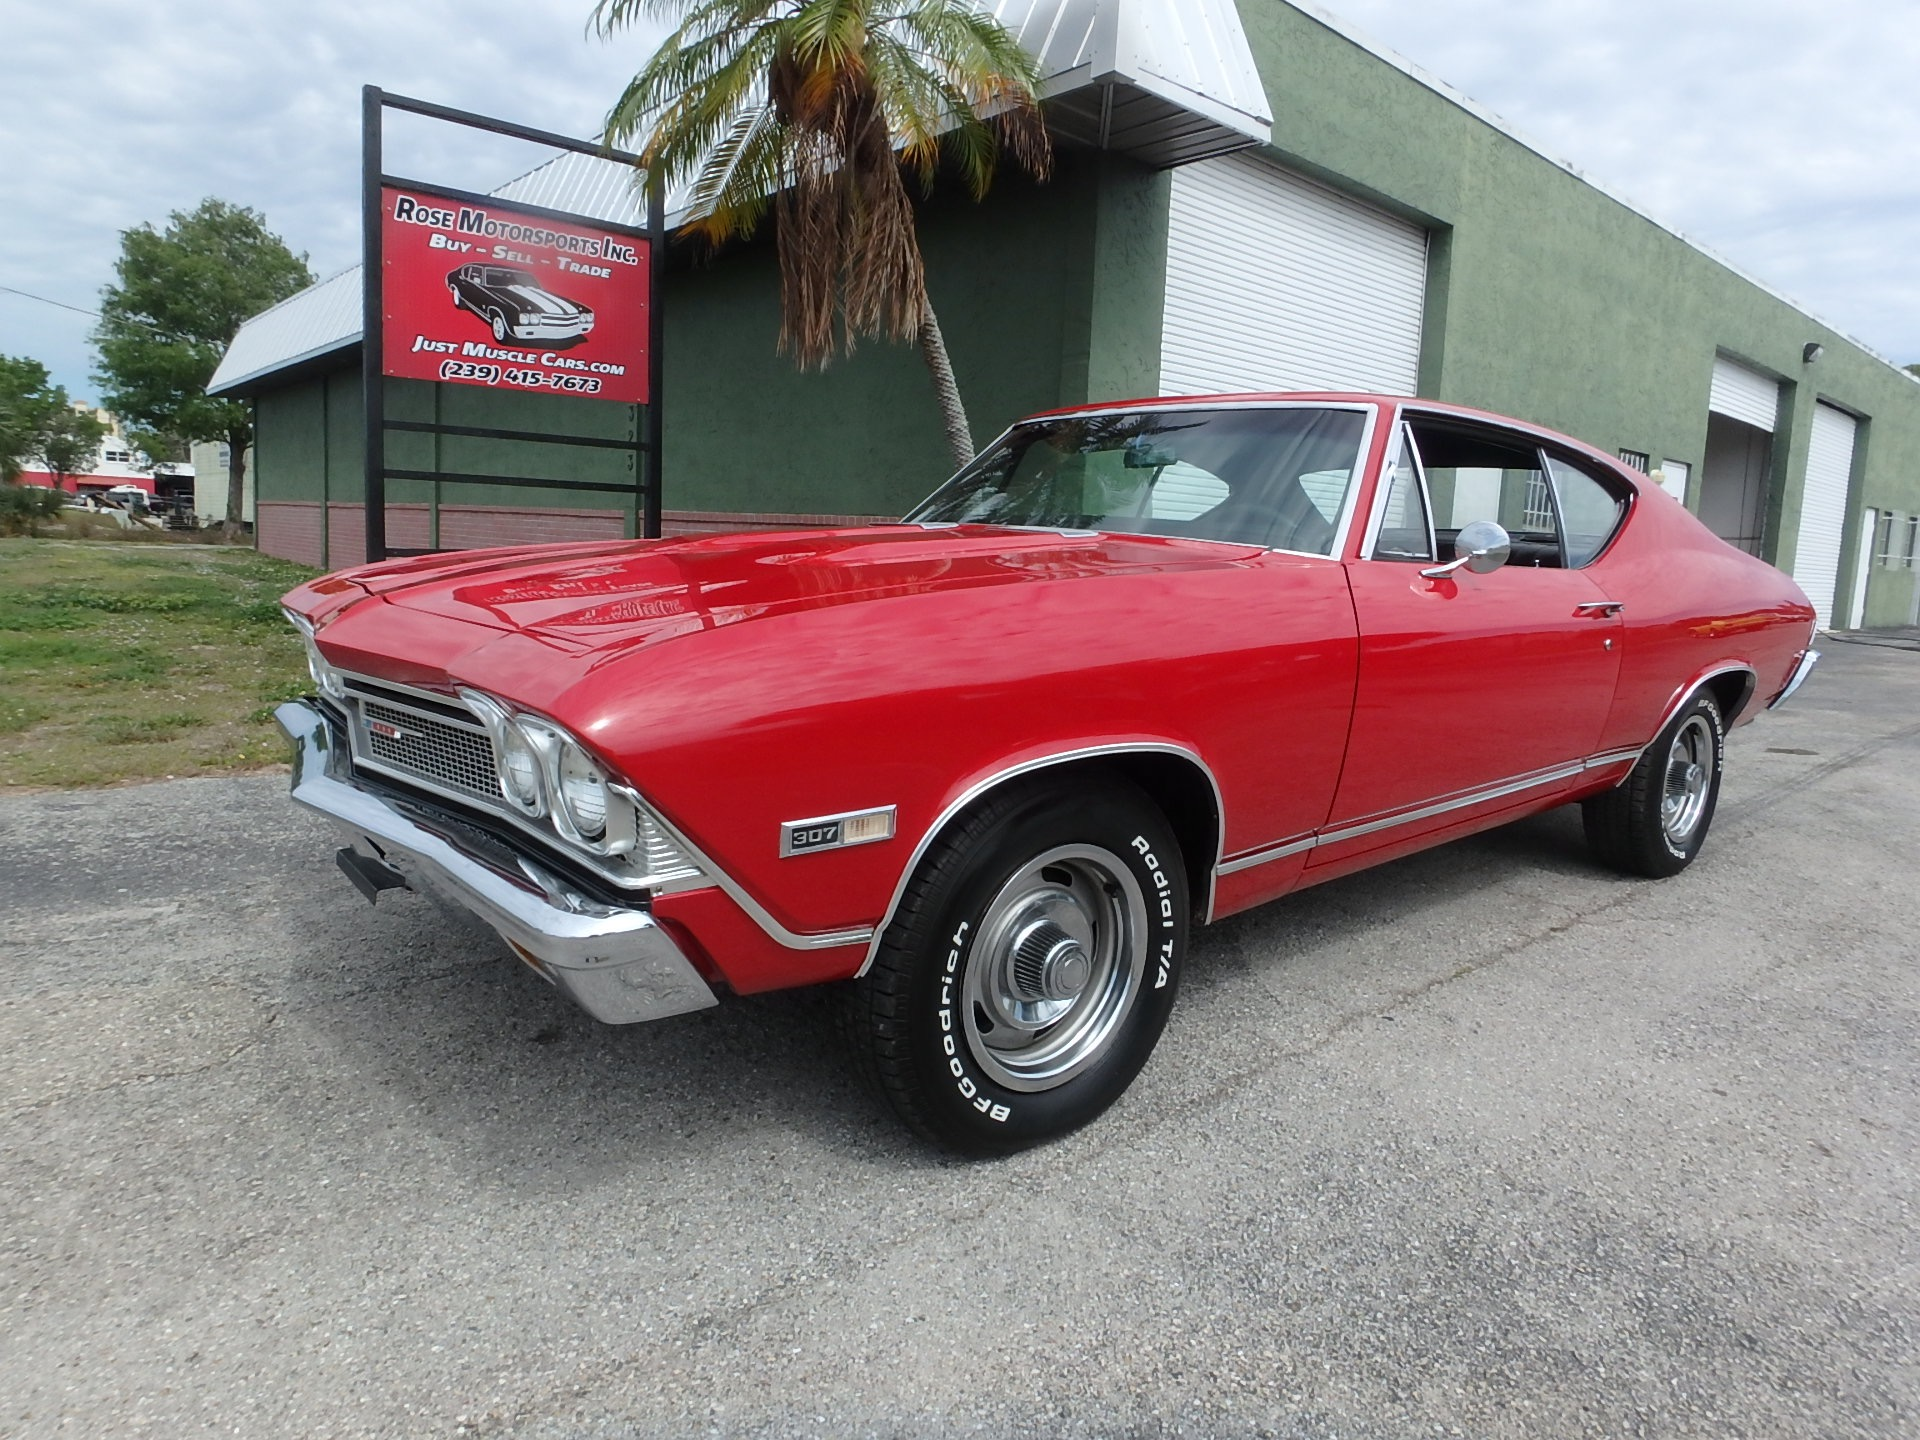 Used-1968-Chevy-Chevelle